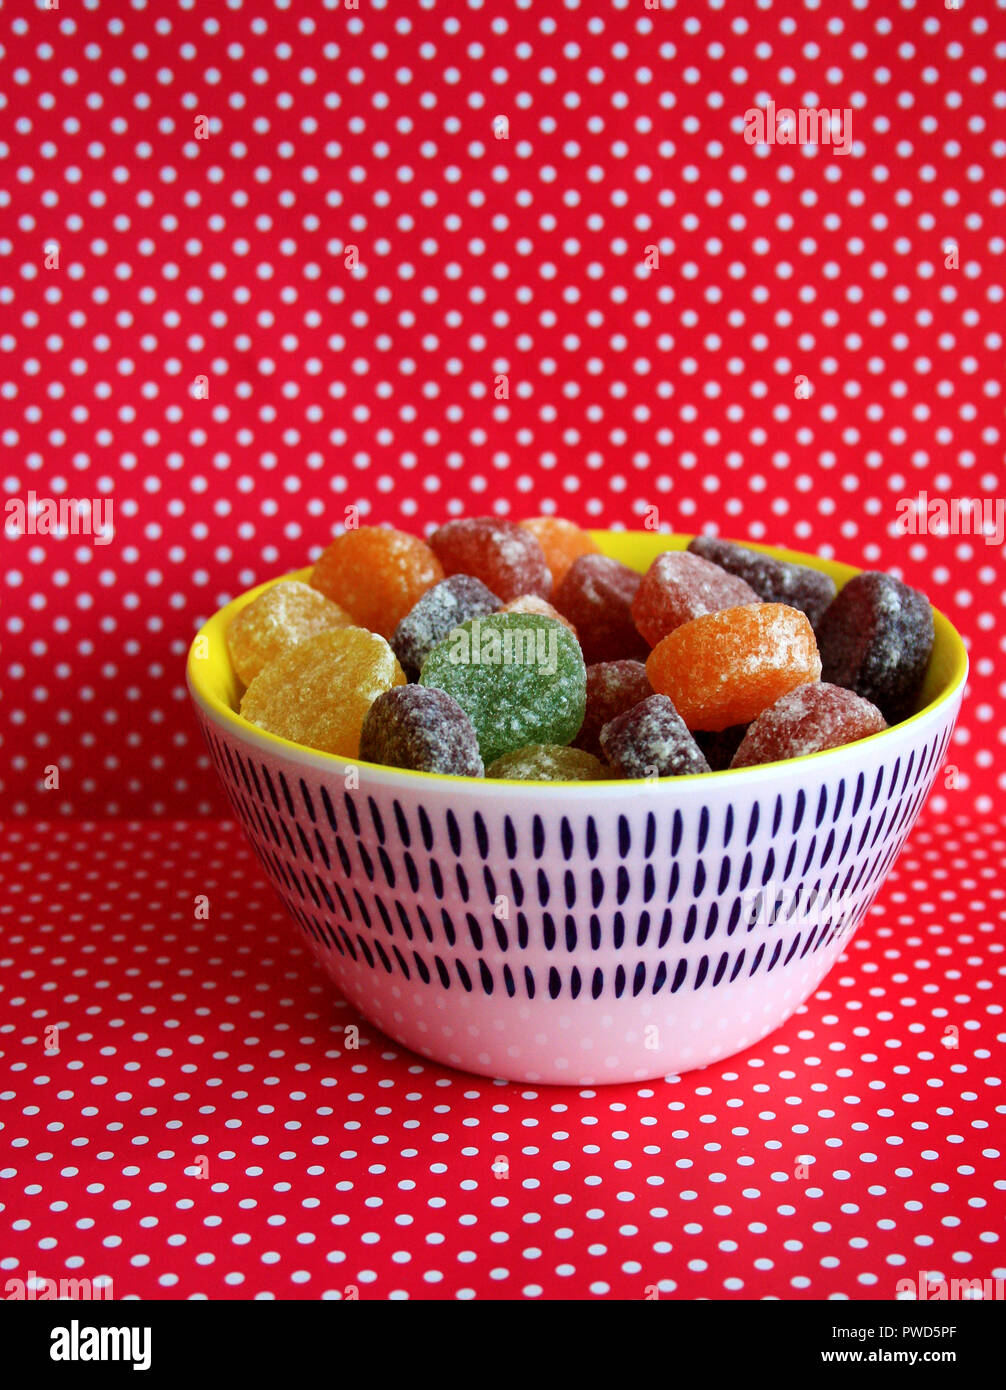 A colourful bowl of sweets/candy with a red spotted background - Stock Image